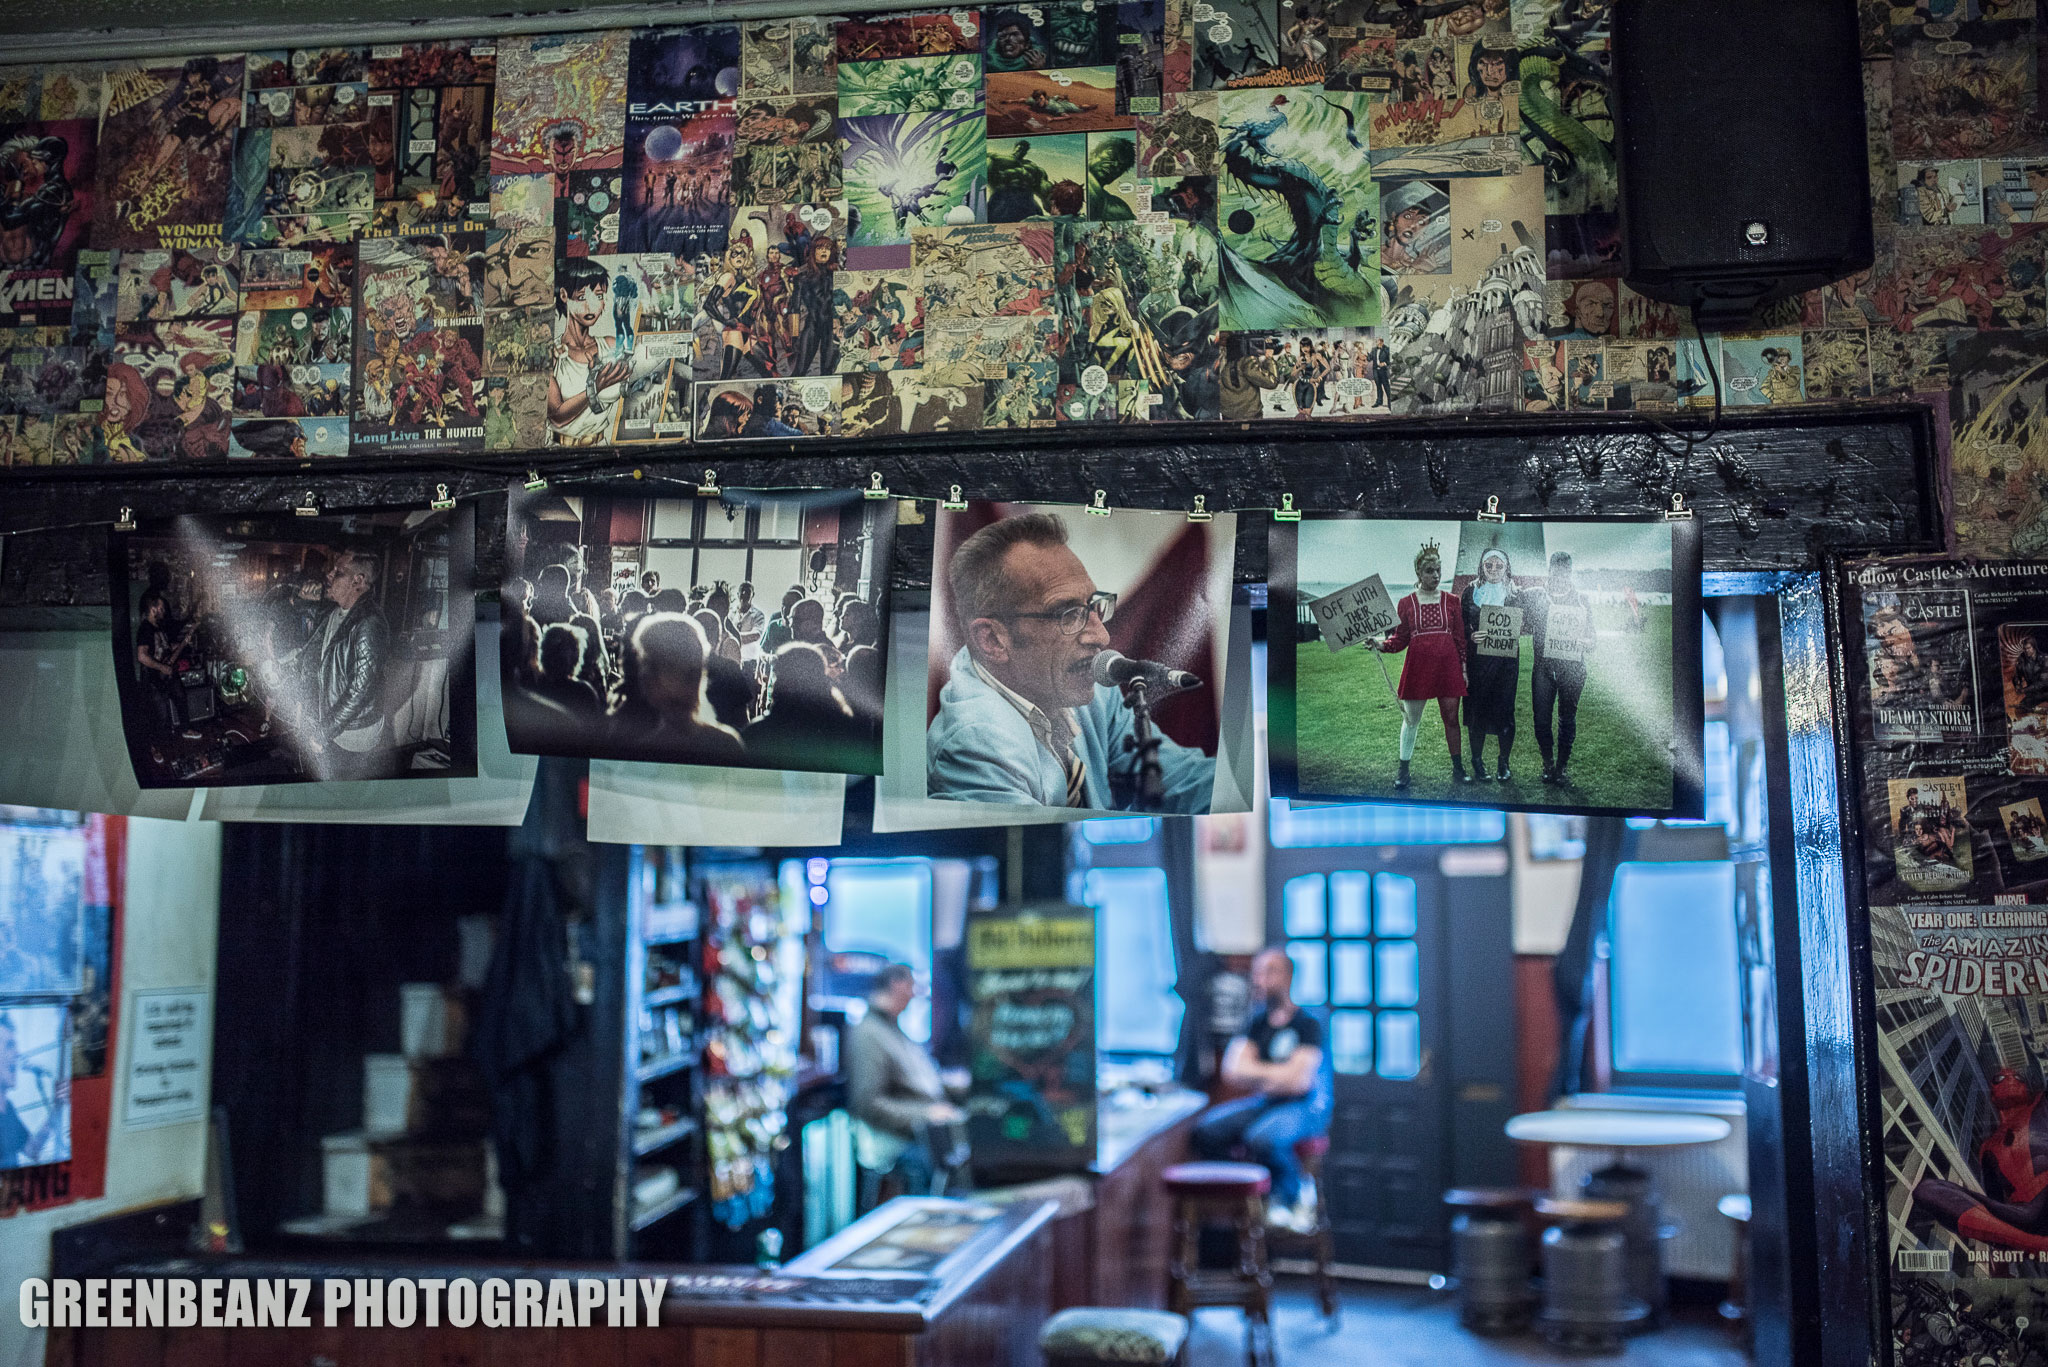 Plymouth Music Photography exhibition at the Nowhere Inn